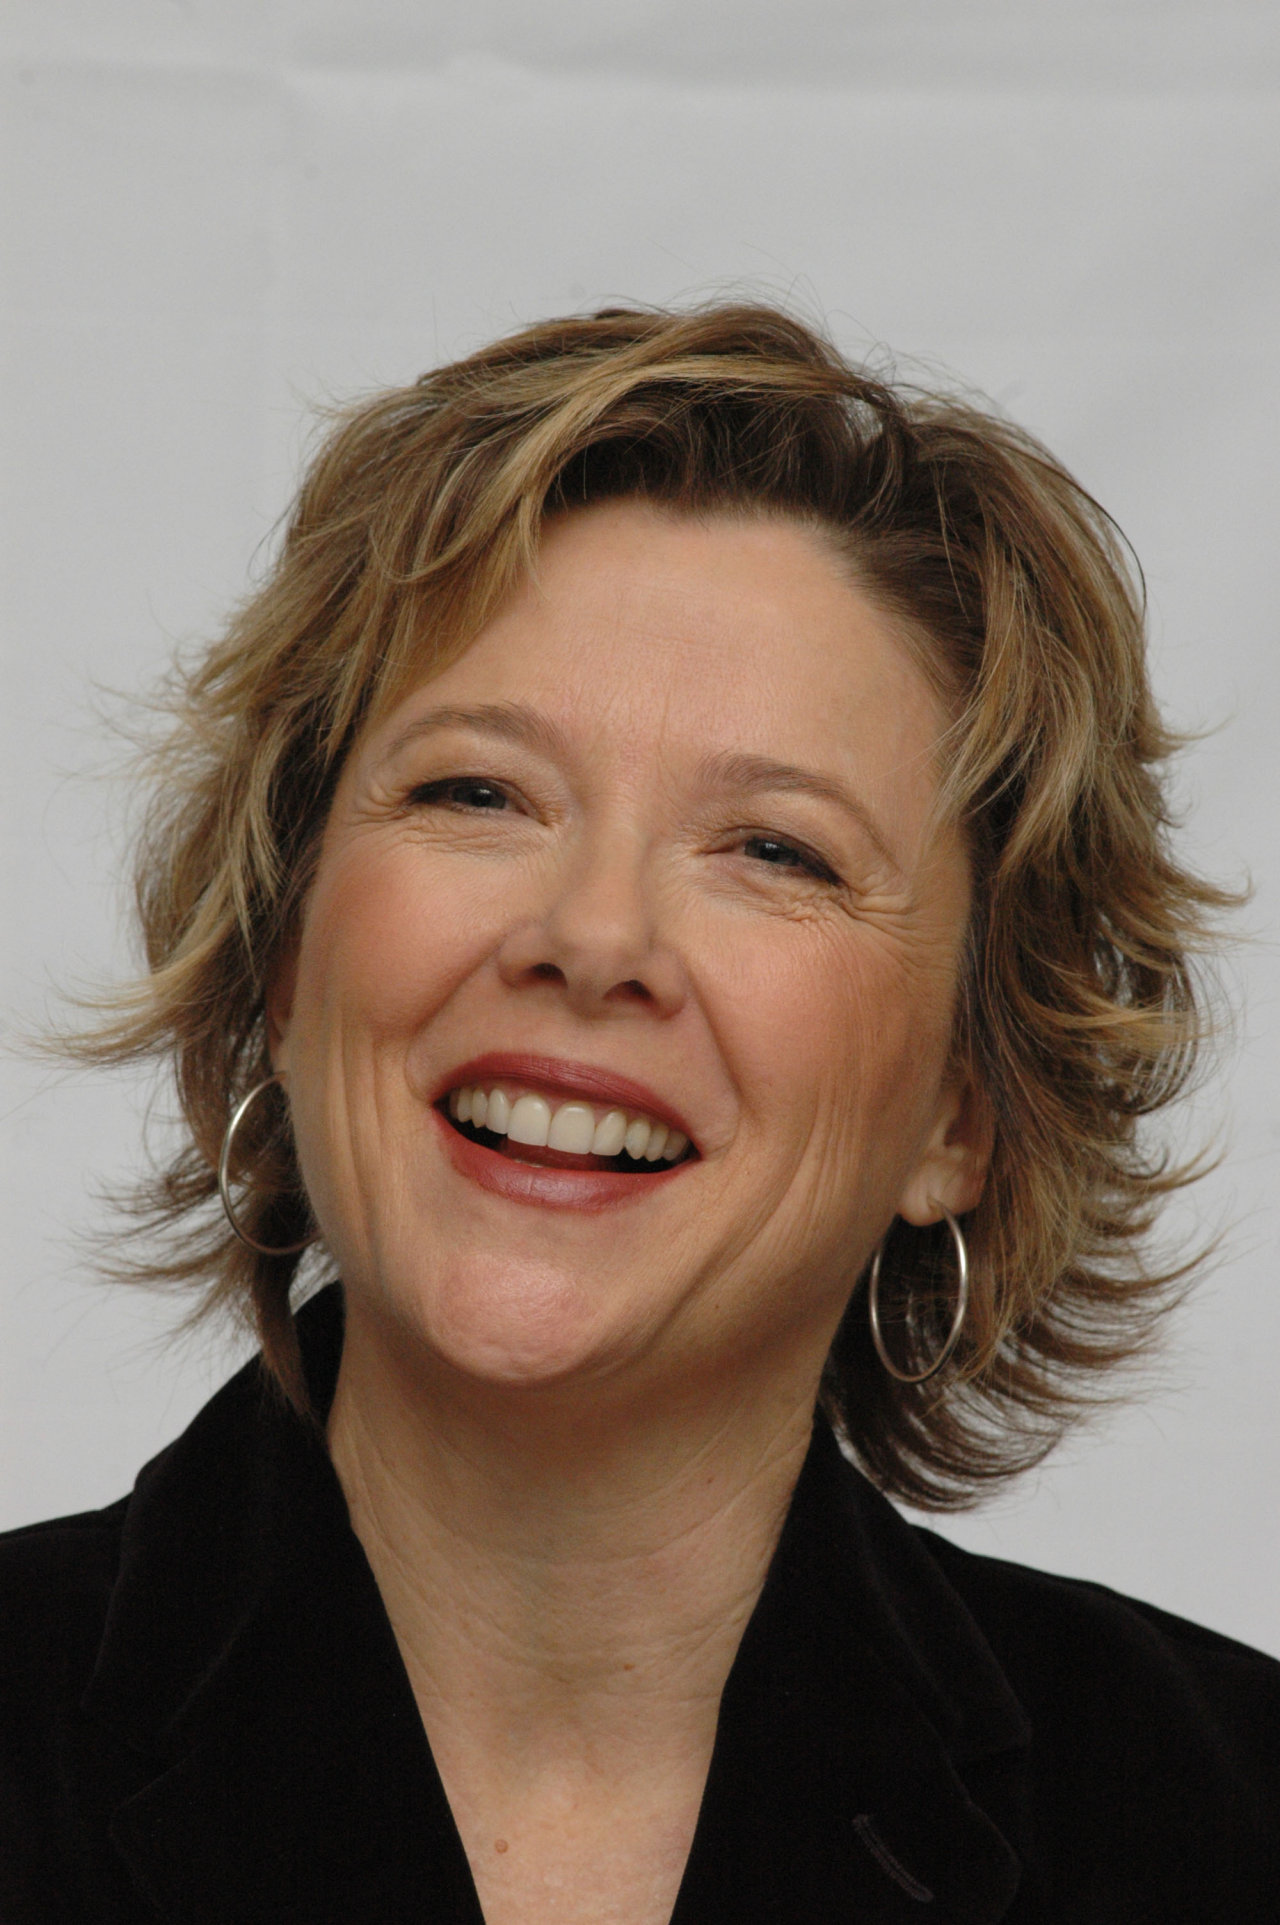 Annette Bening - Images Colection